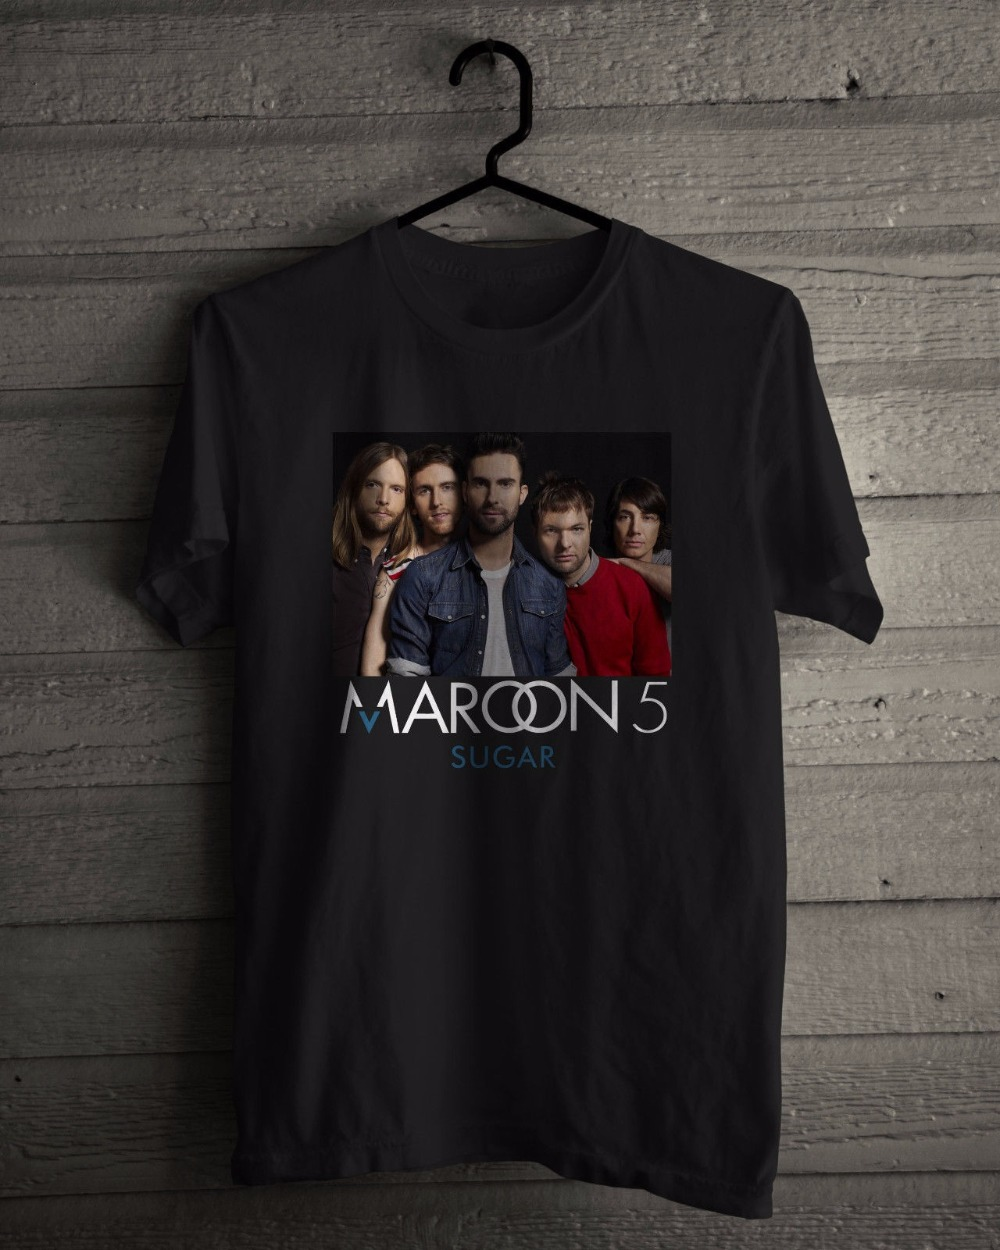 Fashion Fun Mens Maroon 5 T-Shirt Aka Karas Flowers American Pop Rock Band Sugar Black Tee